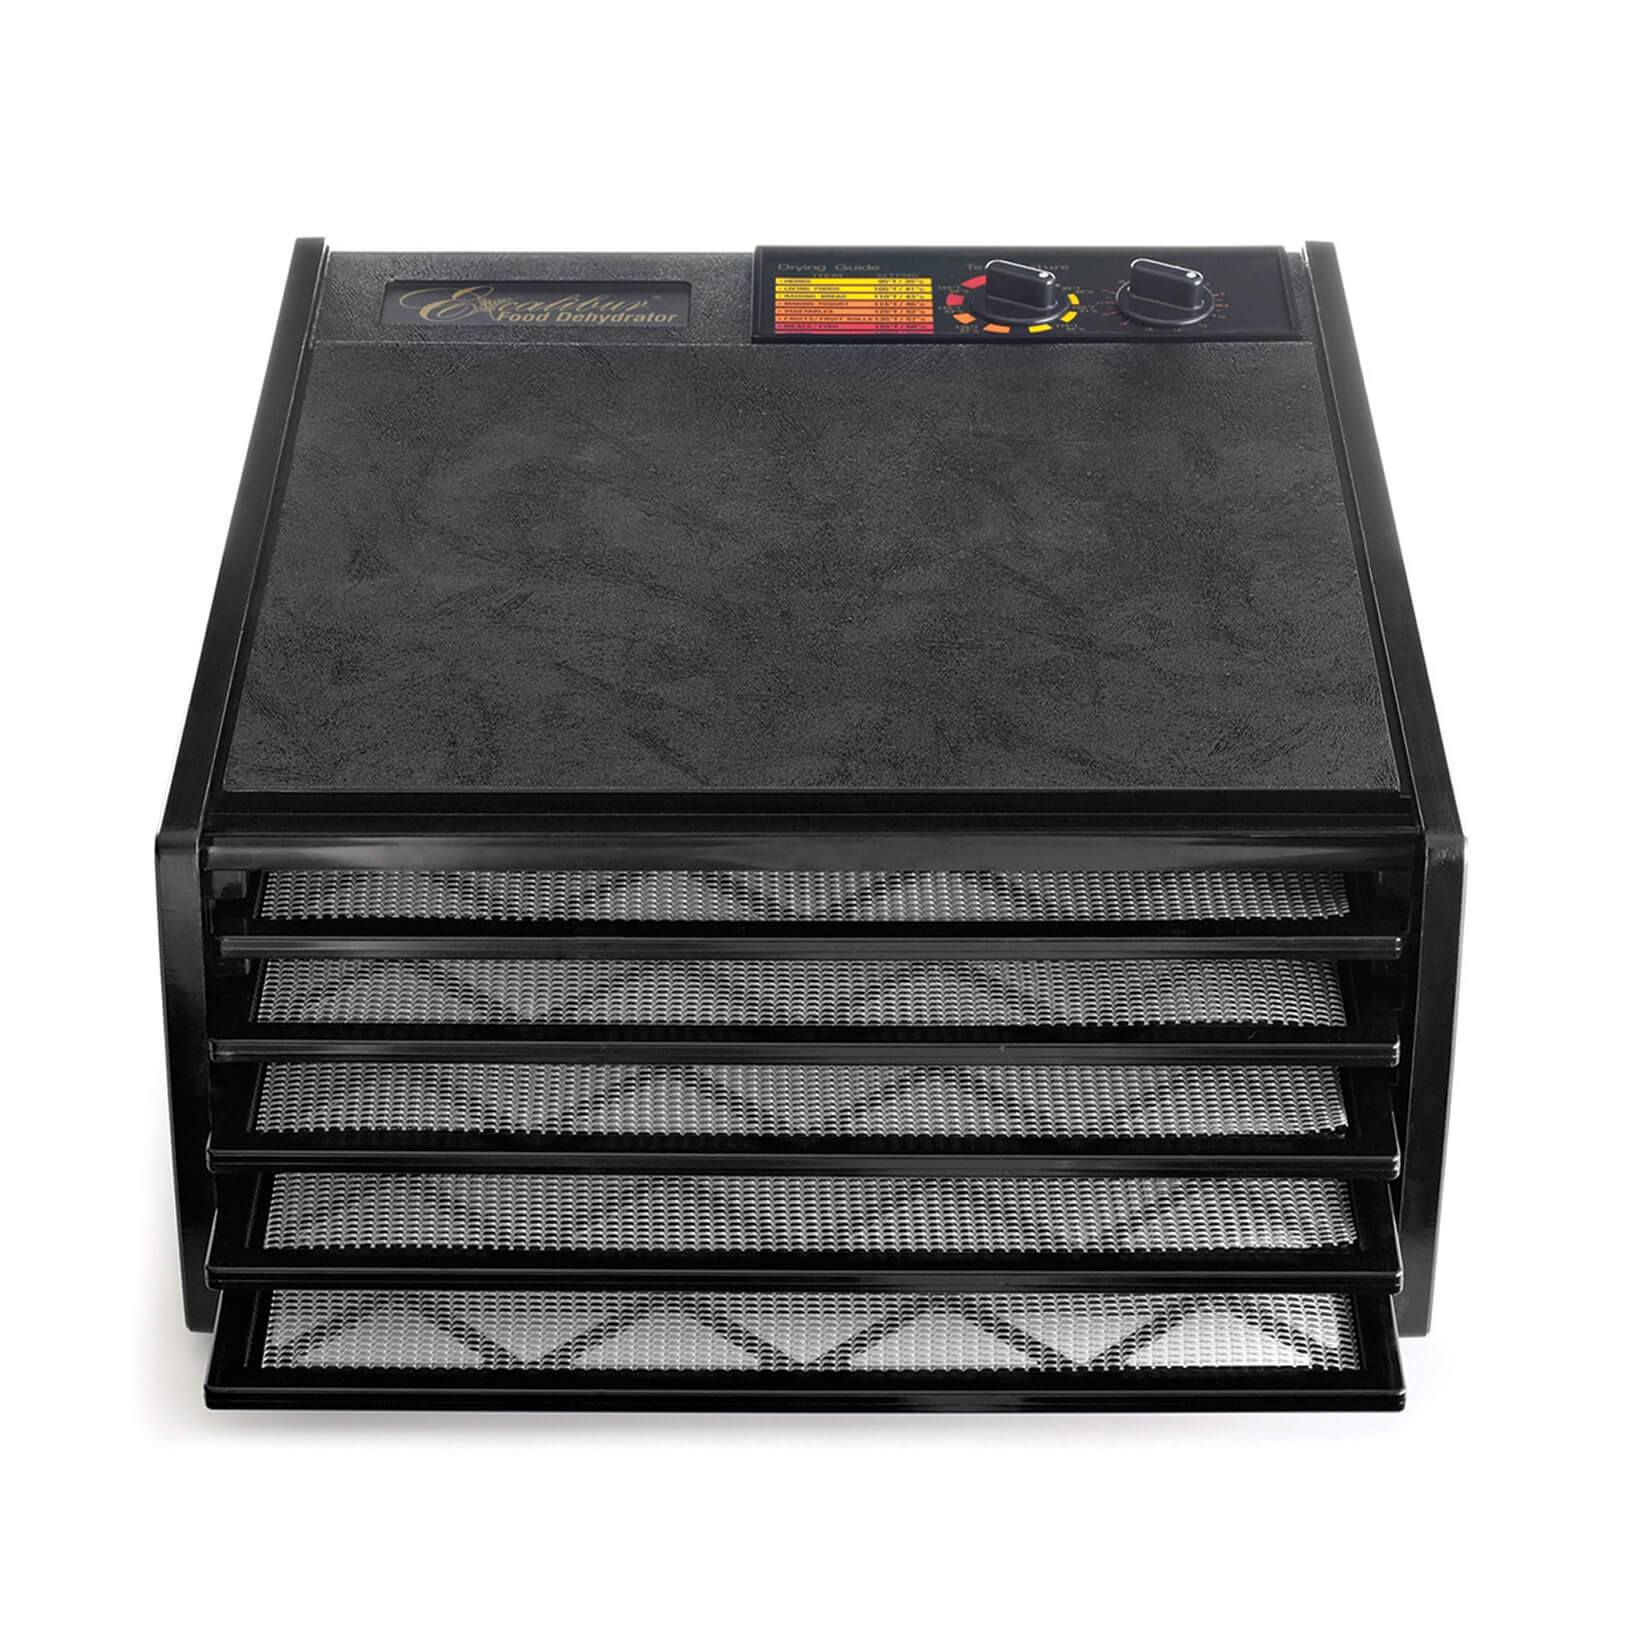 Excalibur 4526T 5 tray dehydrator with trays pulled out.